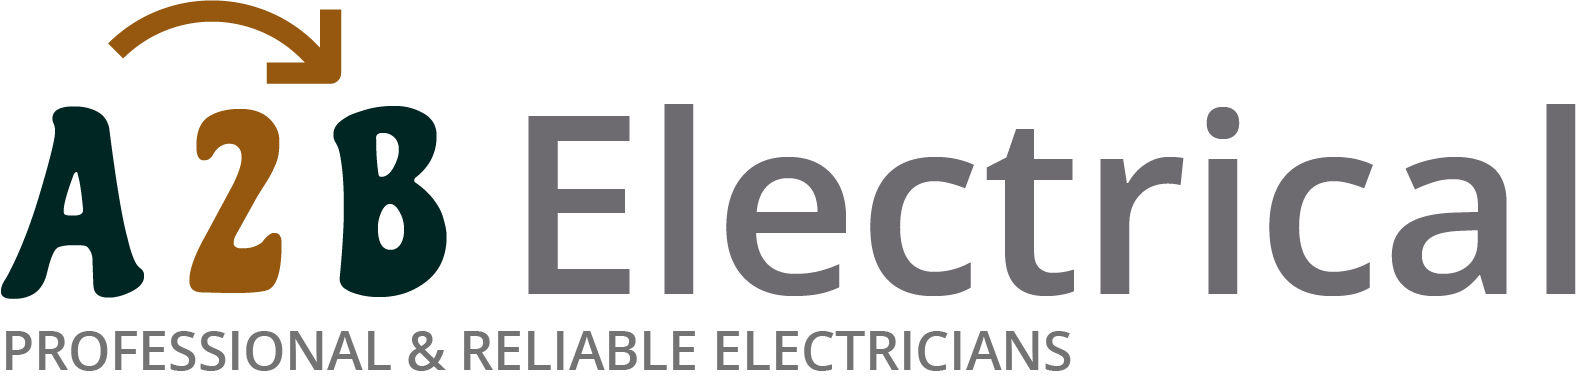 If you have electrical wiring problems in Woodford, we can provide an electrician to have a look for you.